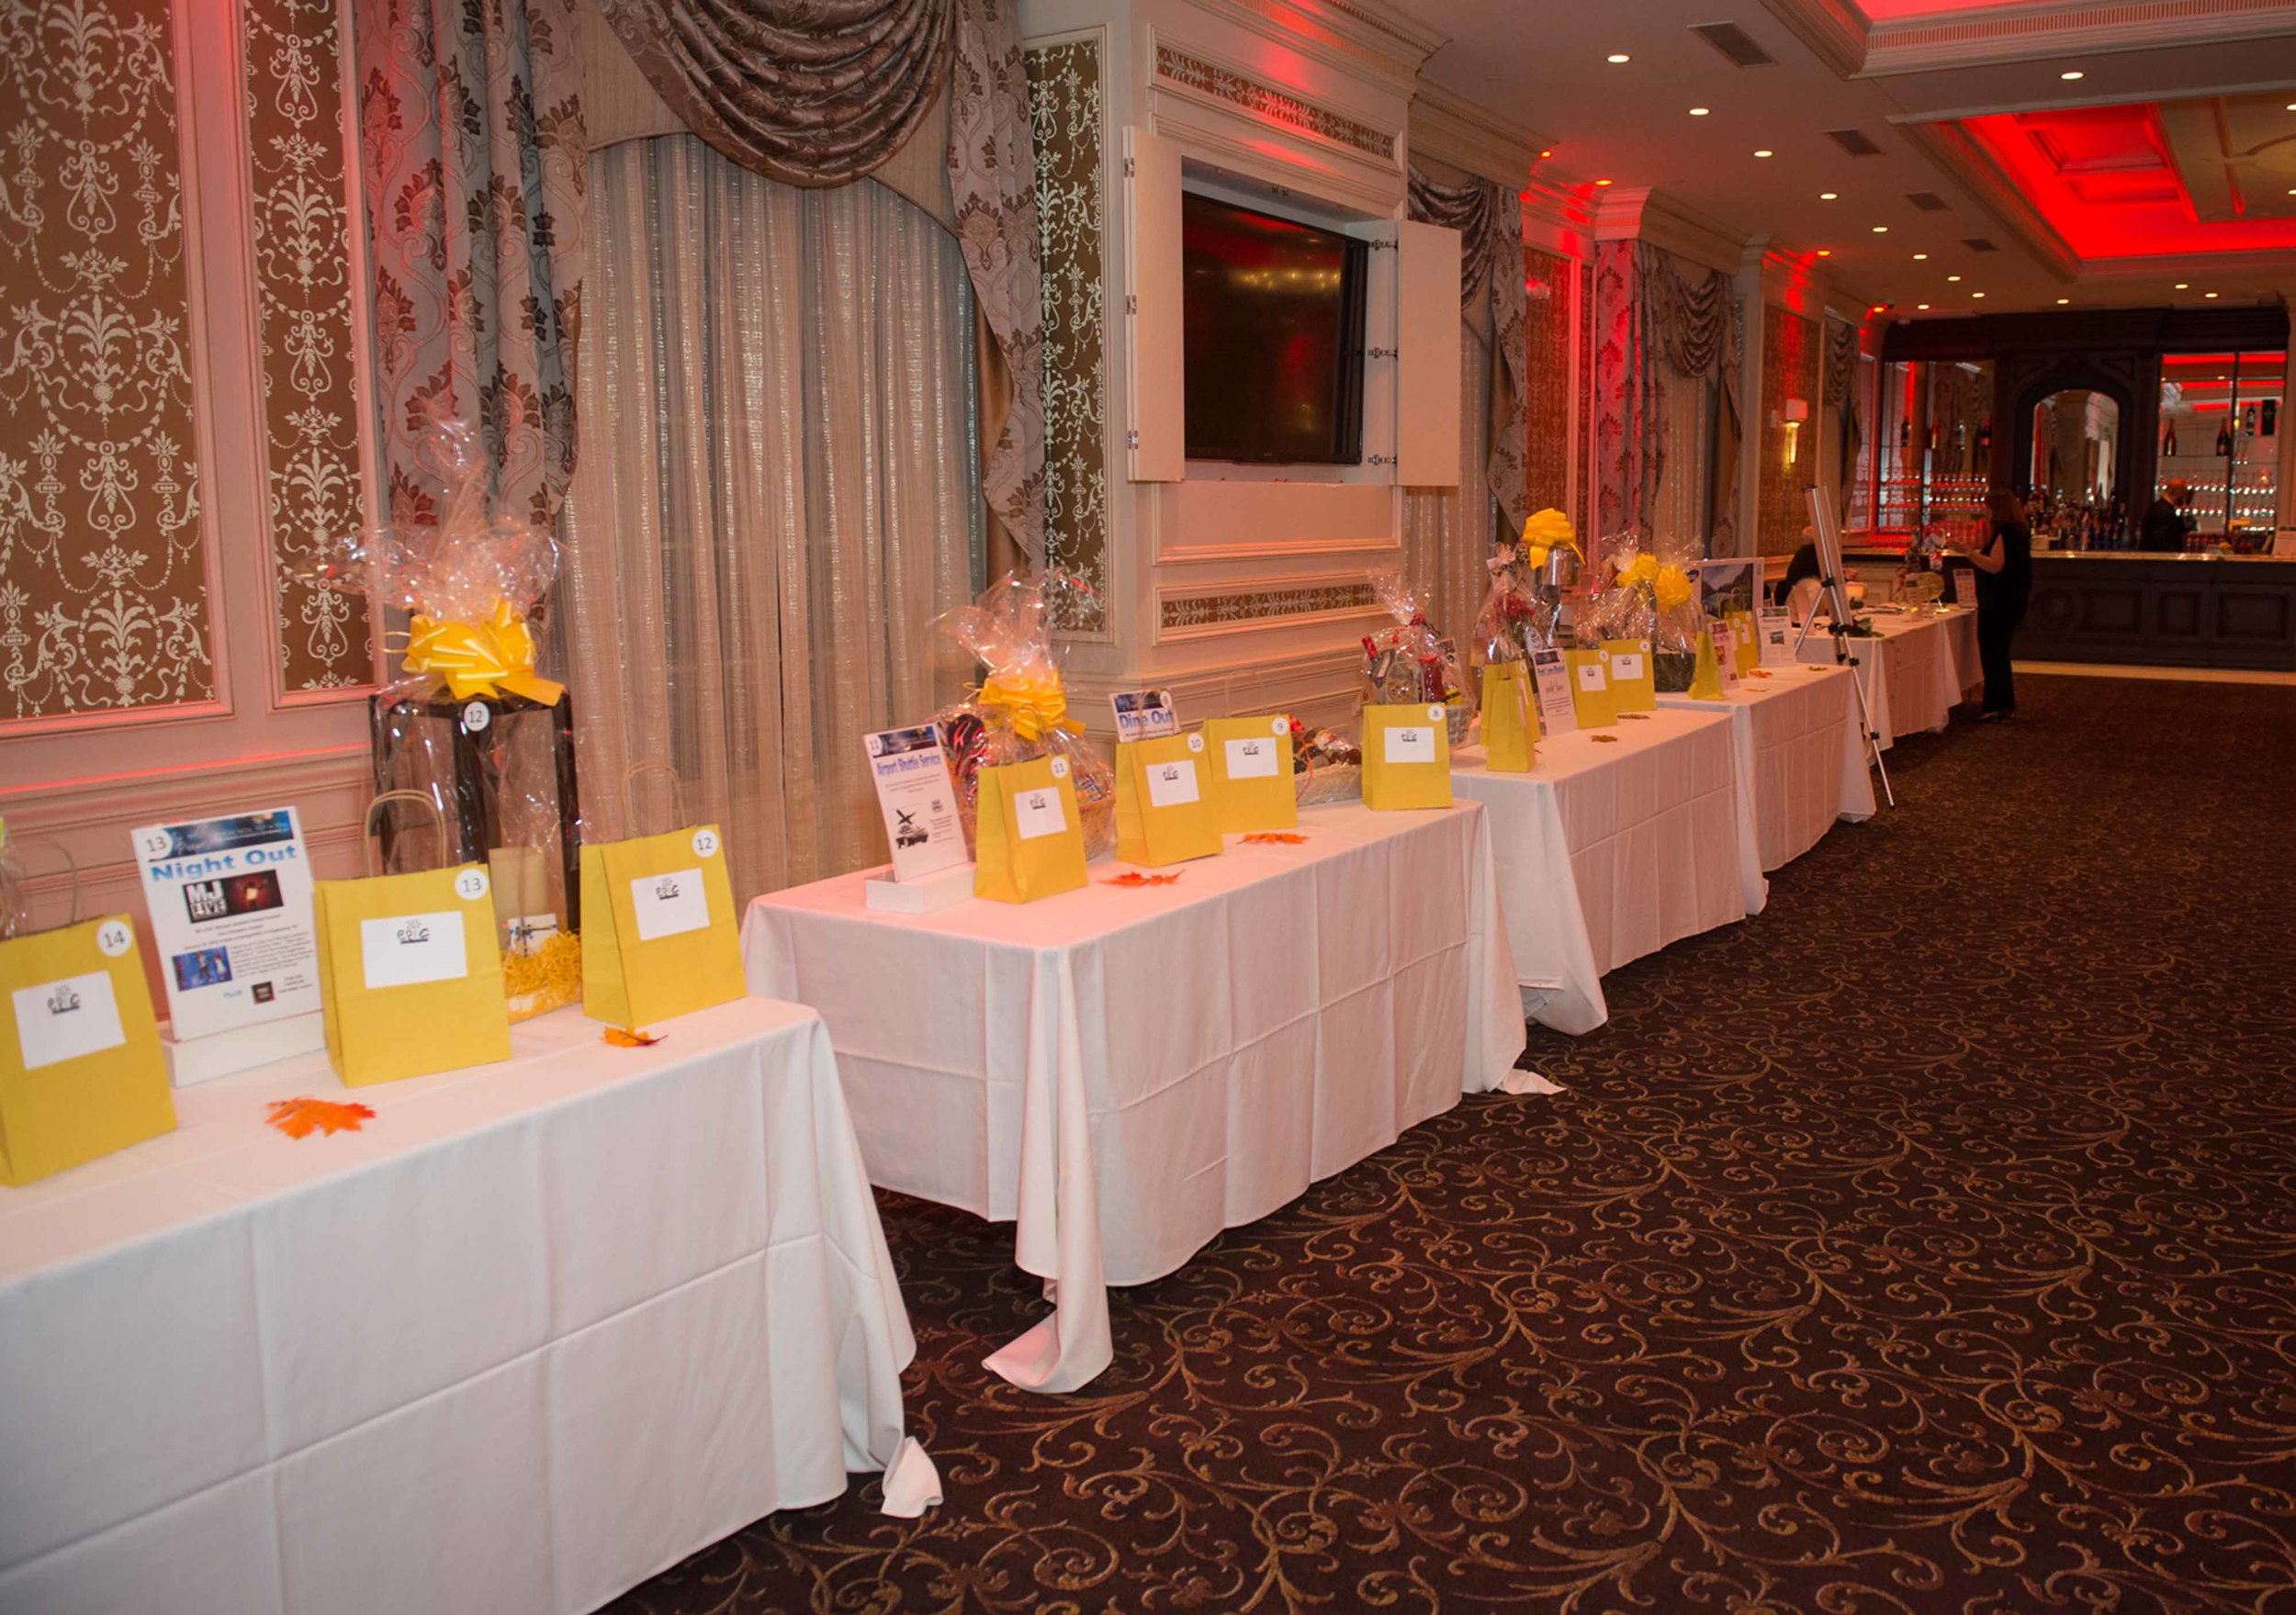 2017-11-10 The EPIC School - Party with a Purpose - Biagios on the Terrace - Paramus NJ-9.jpg